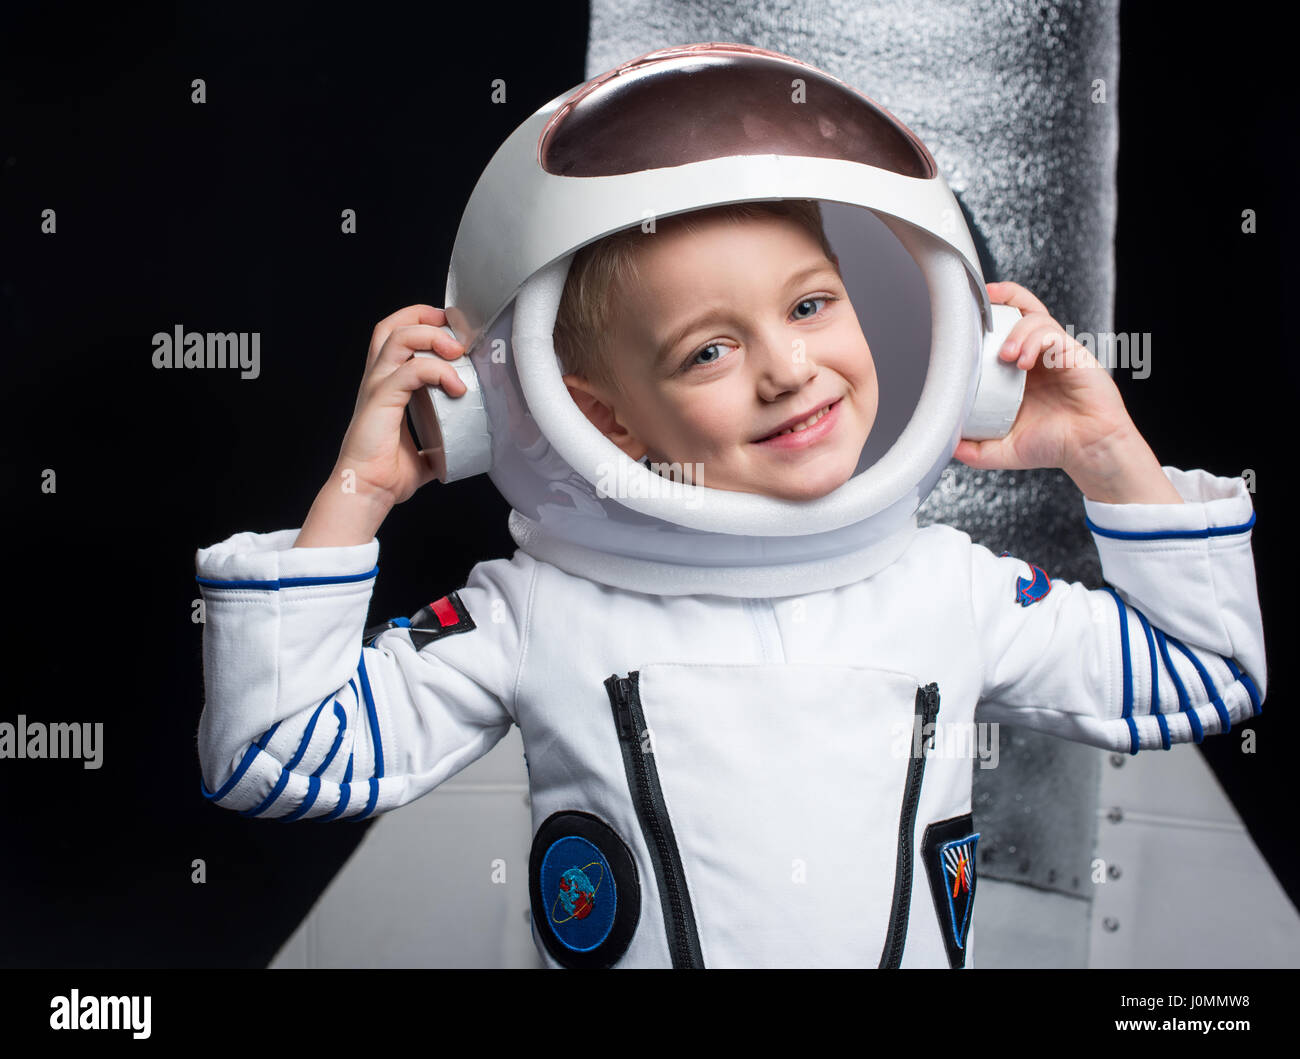 Little boy astronaut in space suit adjusting helmet and ...